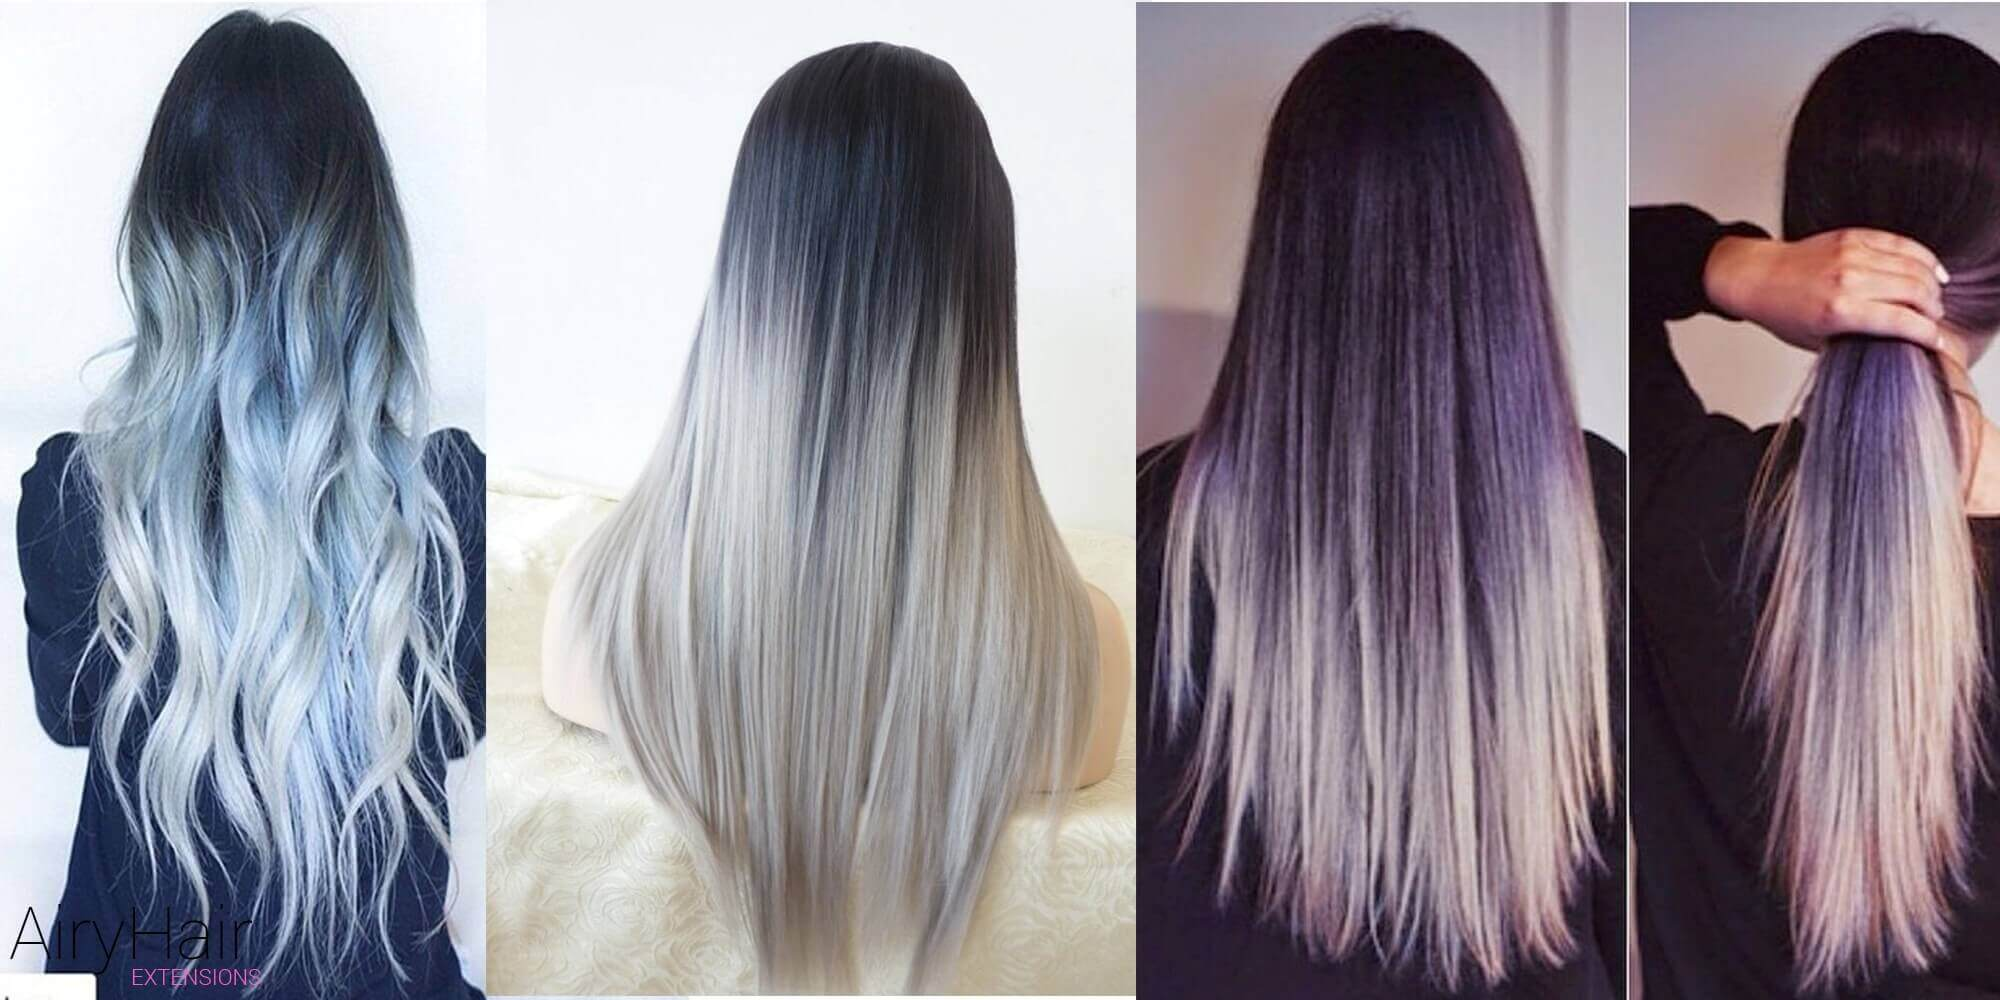 10 Stunning Black Ombre Hairstyles With Hair Extensions